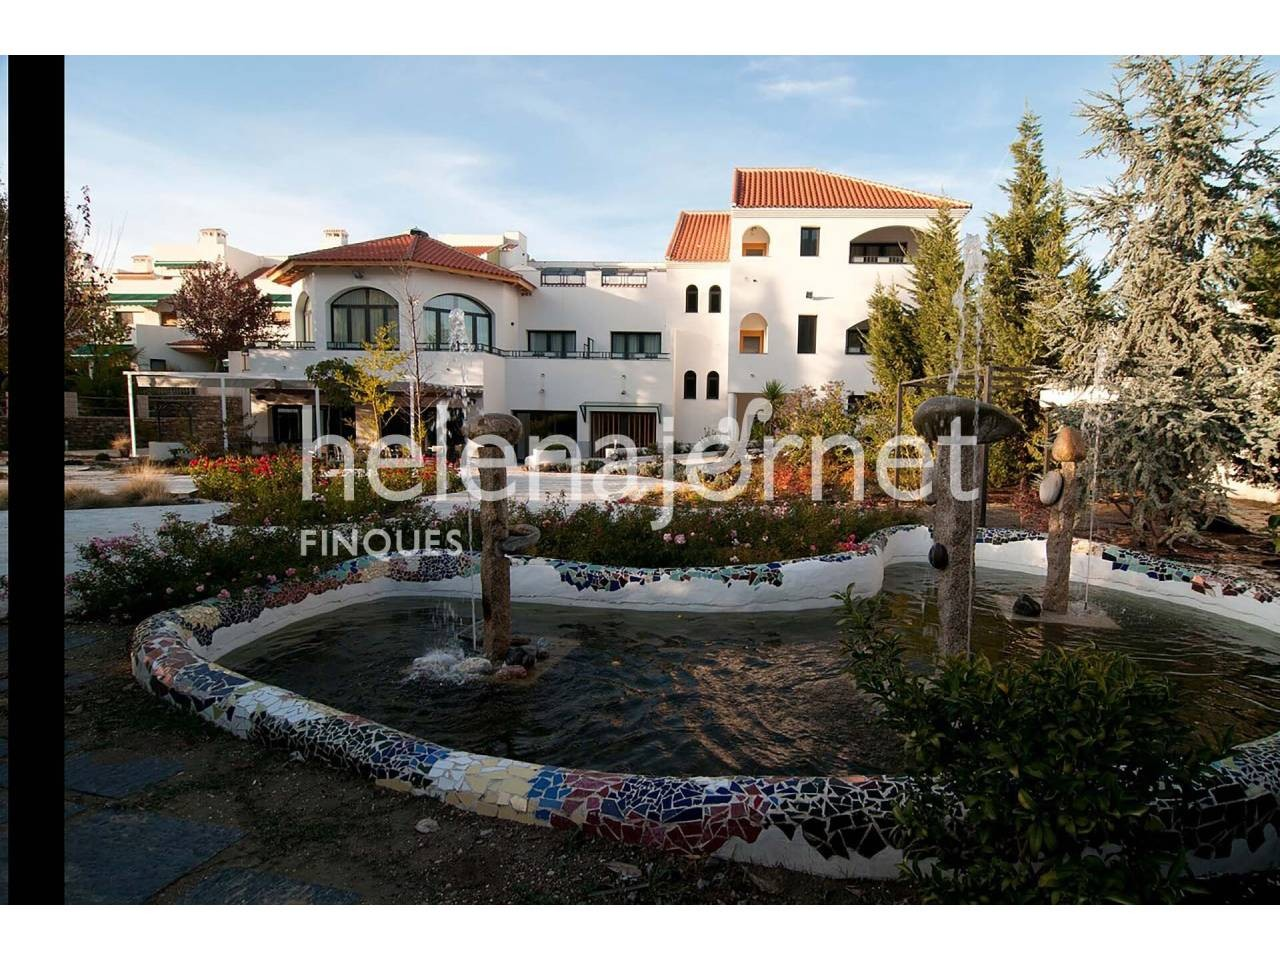 Charming rural hotel complex surrounded by nature - 1556